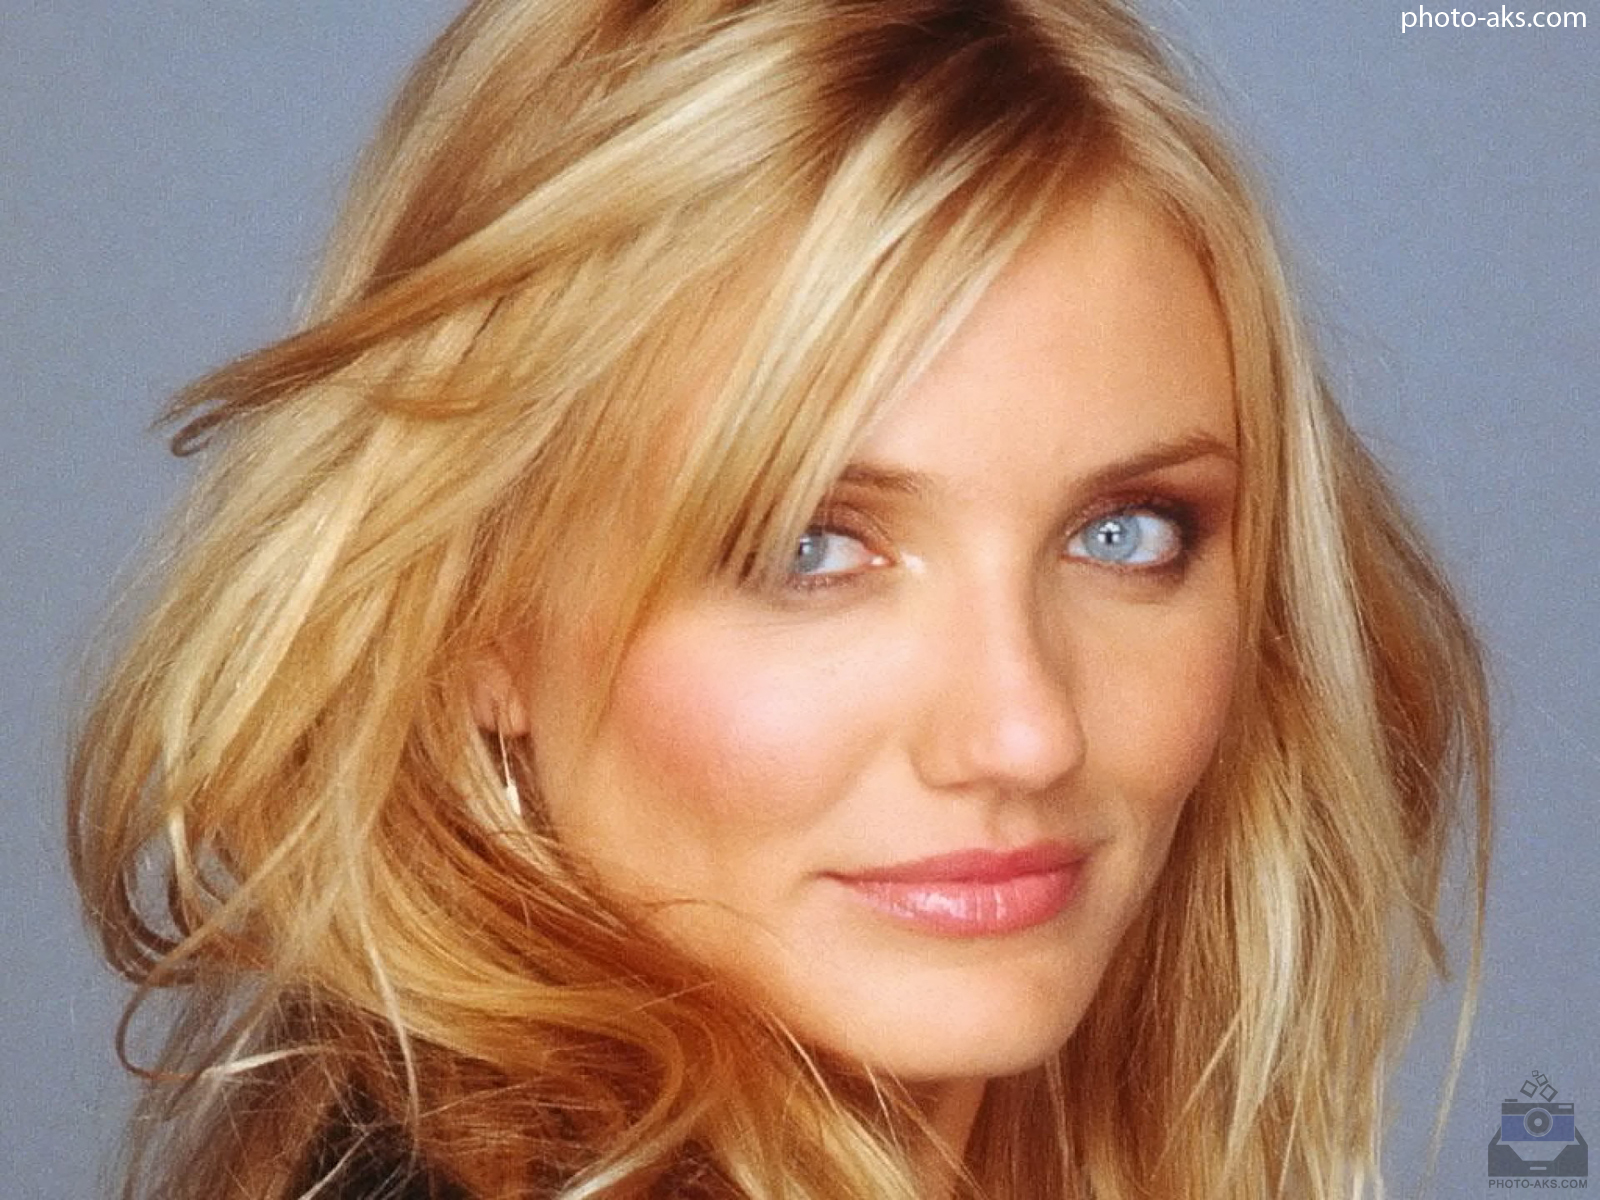 http://pic.photo-aks.com/photo/actor/bazigaran-zan/large/cameron-diaz-wallpaper.jpg